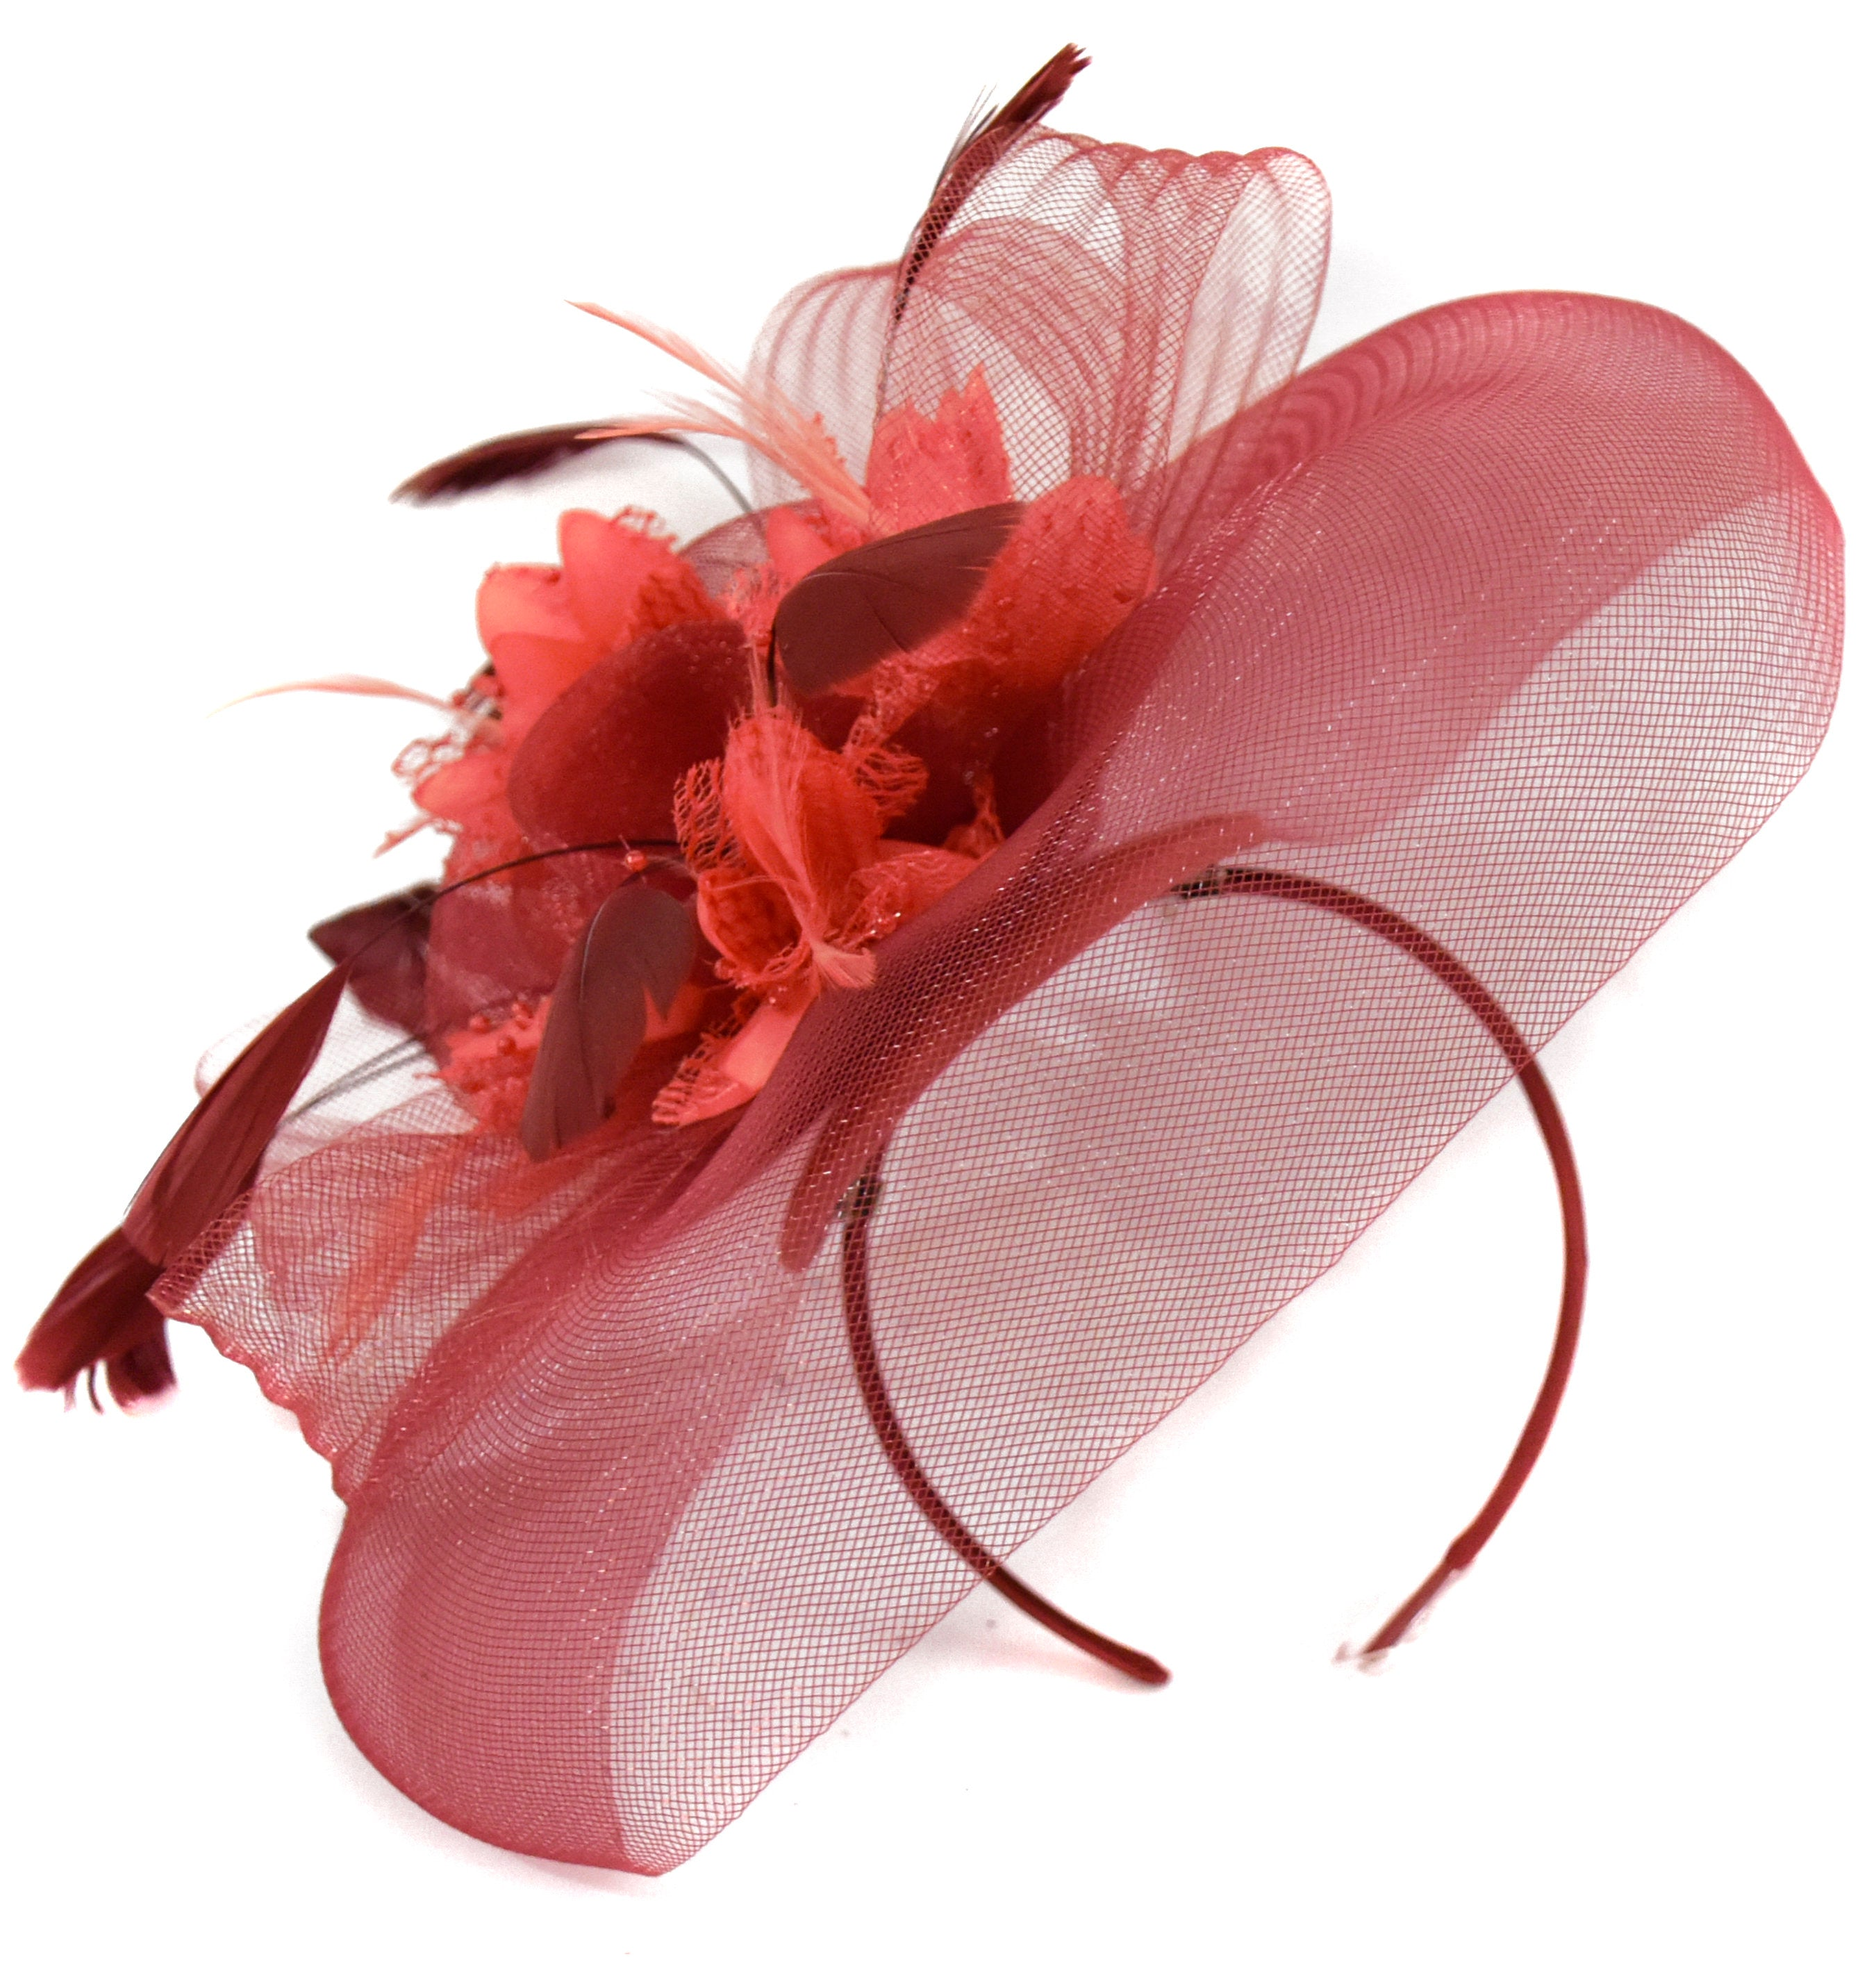 Caprilite Big Burgundy Coral Fascinator Hat Veil Net Hair Clip Ascot Derby Races Wedding Headband Feather Flower